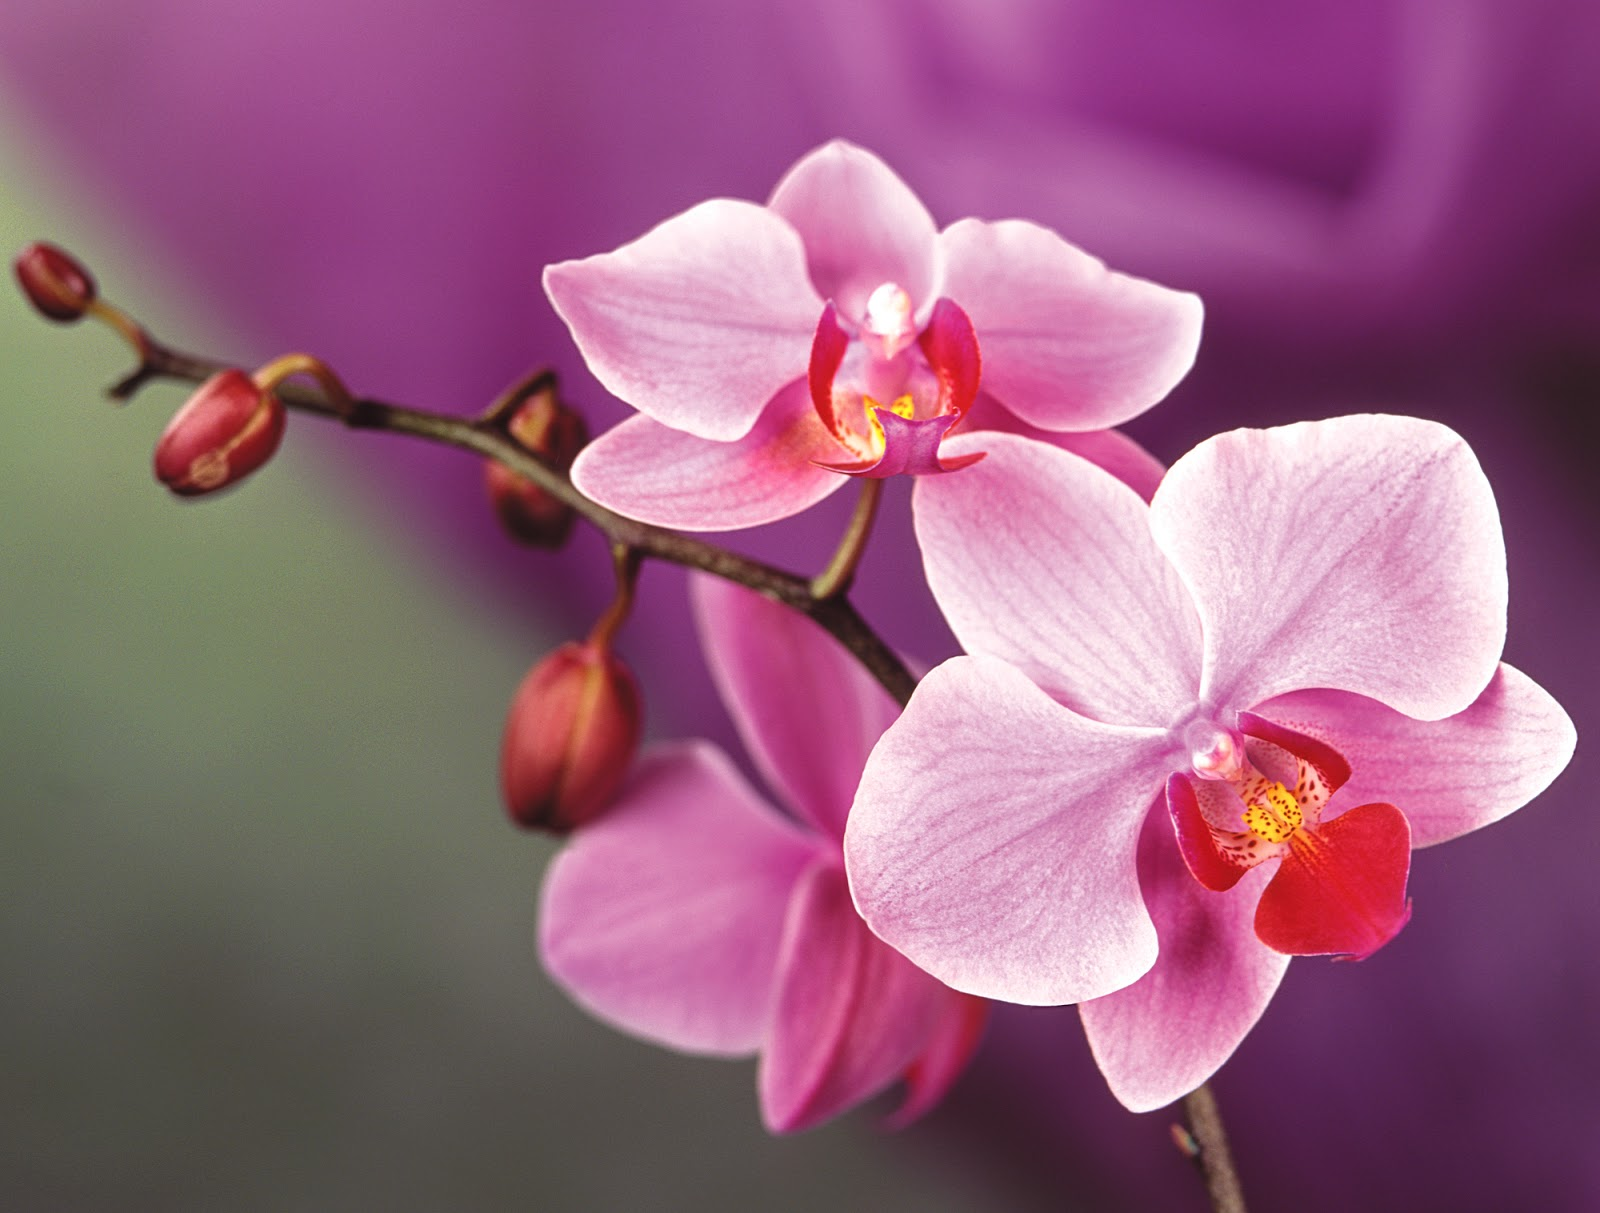 orchid flower image hd wallpaper stock photos free download. Black Bedroom Furniture Sets. Home Design Ideas